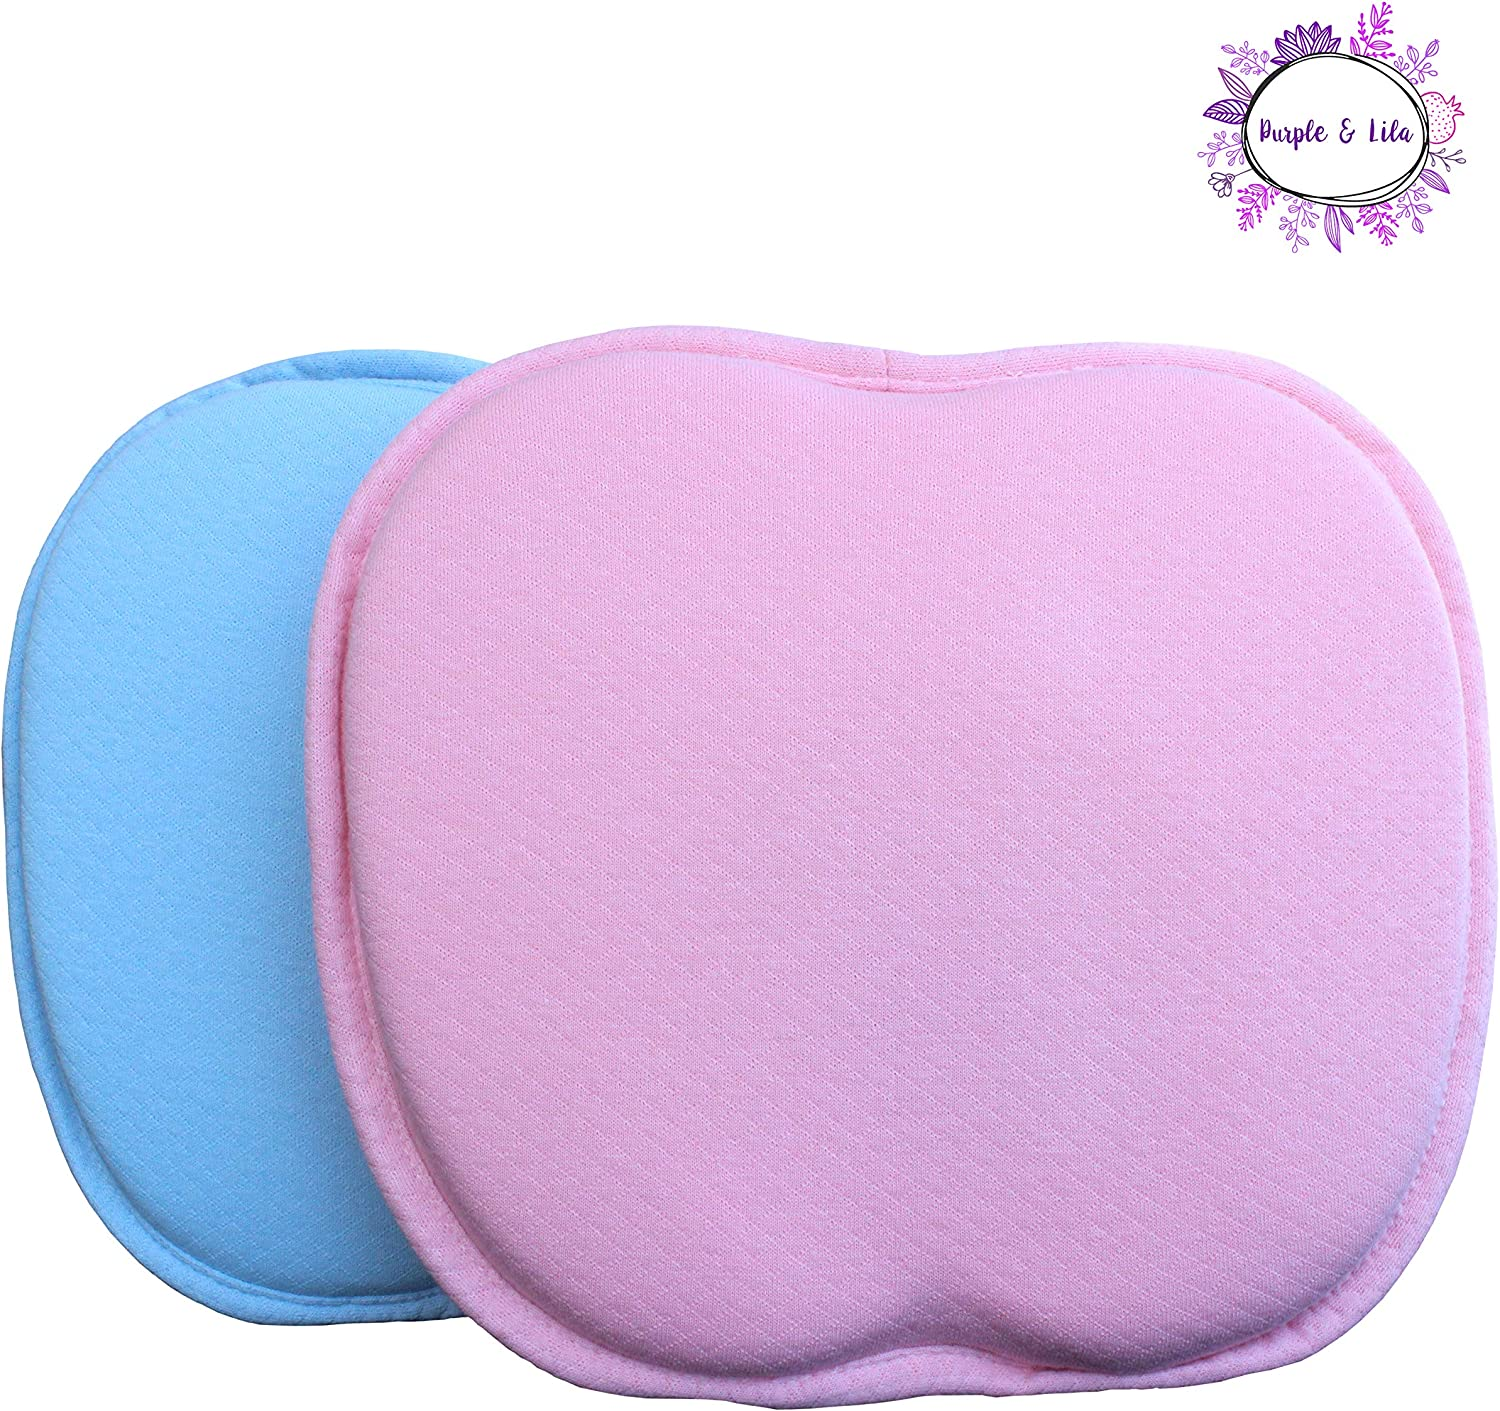 Memory Foam Baby Pillow with two Removable 100/% Cotton Covers Prevent Flat Head/ /Purple y lila Memory Foam Baby Pillow Blue Memory Foam Head Pillow Babies rosa Rosa /Ergonomic Design/